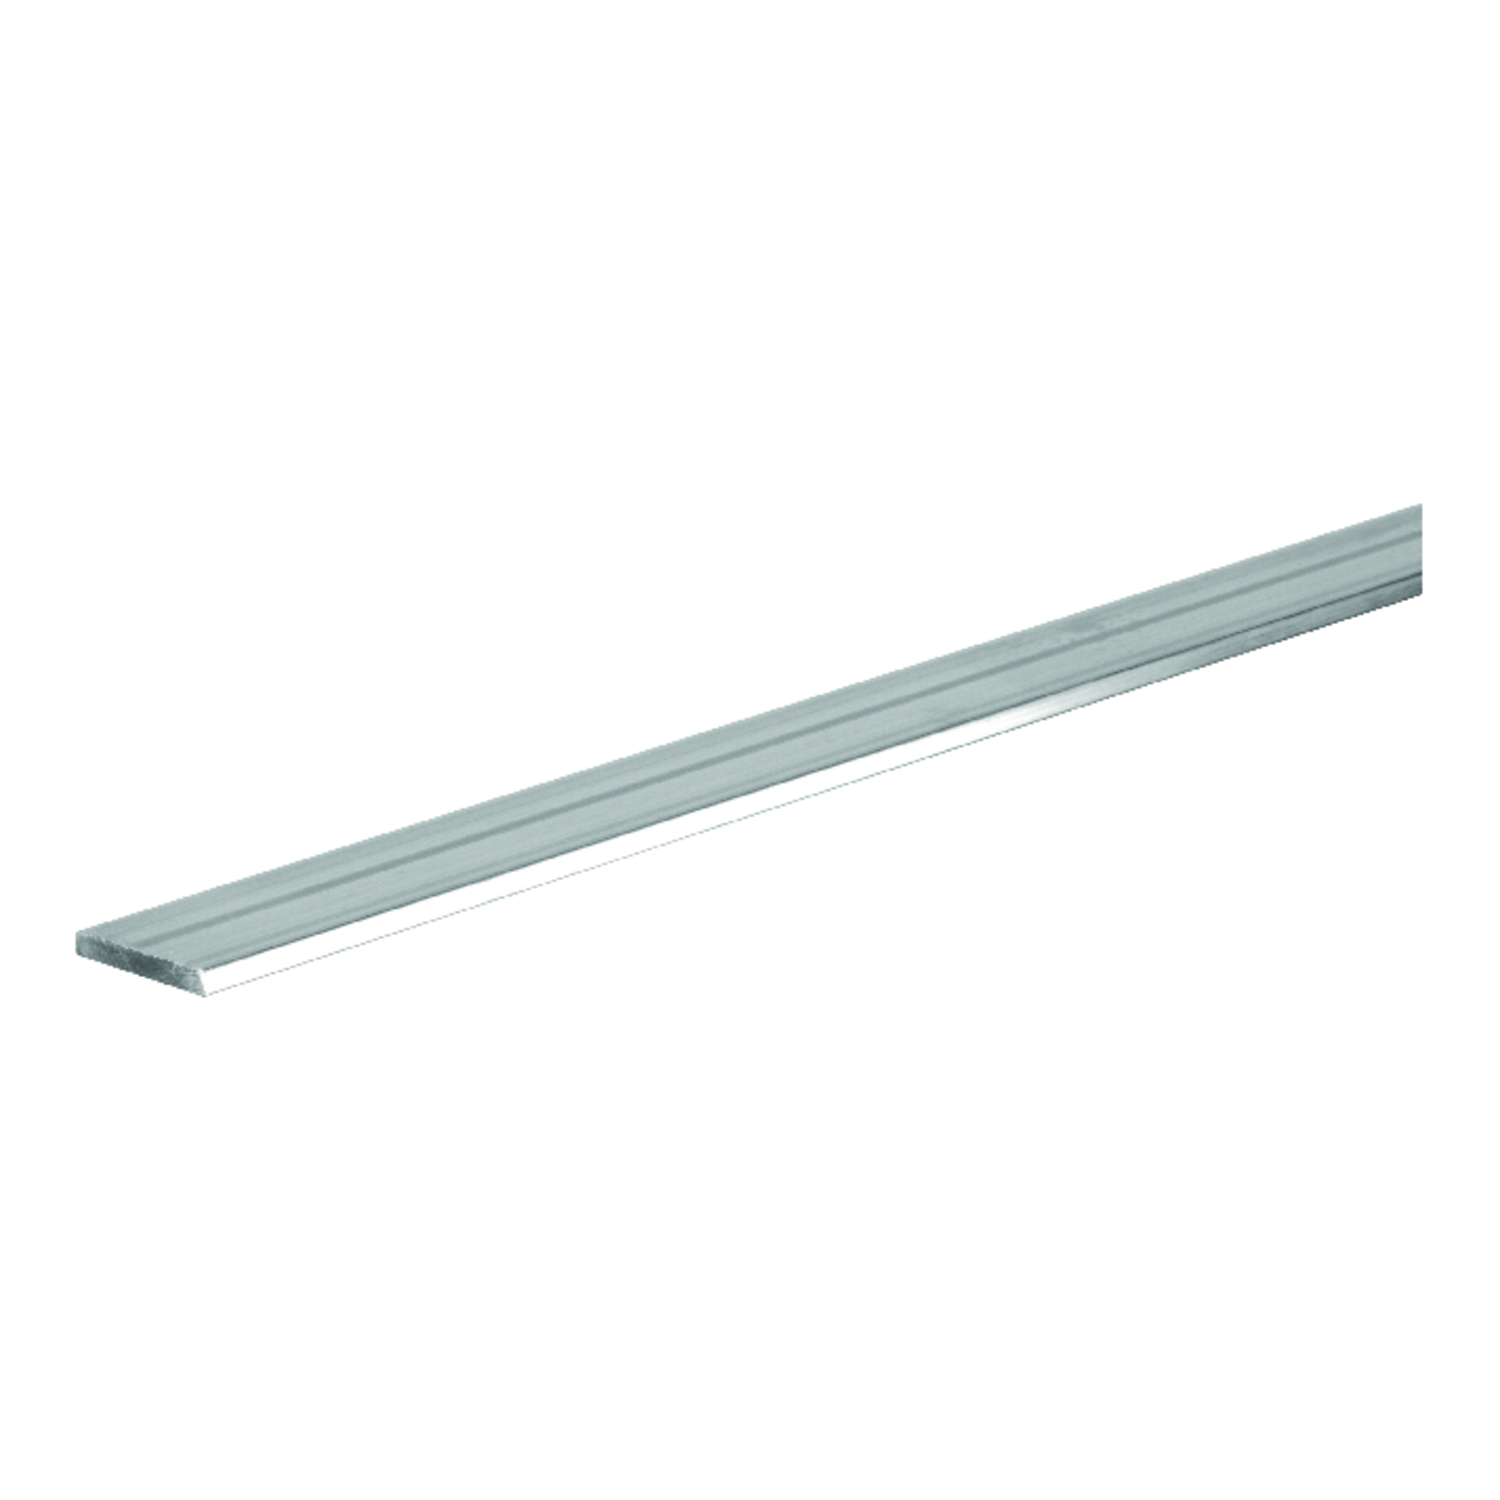 Boltmaster  0.125 in.  x 2 in. W x 4 ft. L Weldable Aluminum Flat Bar  5 pk